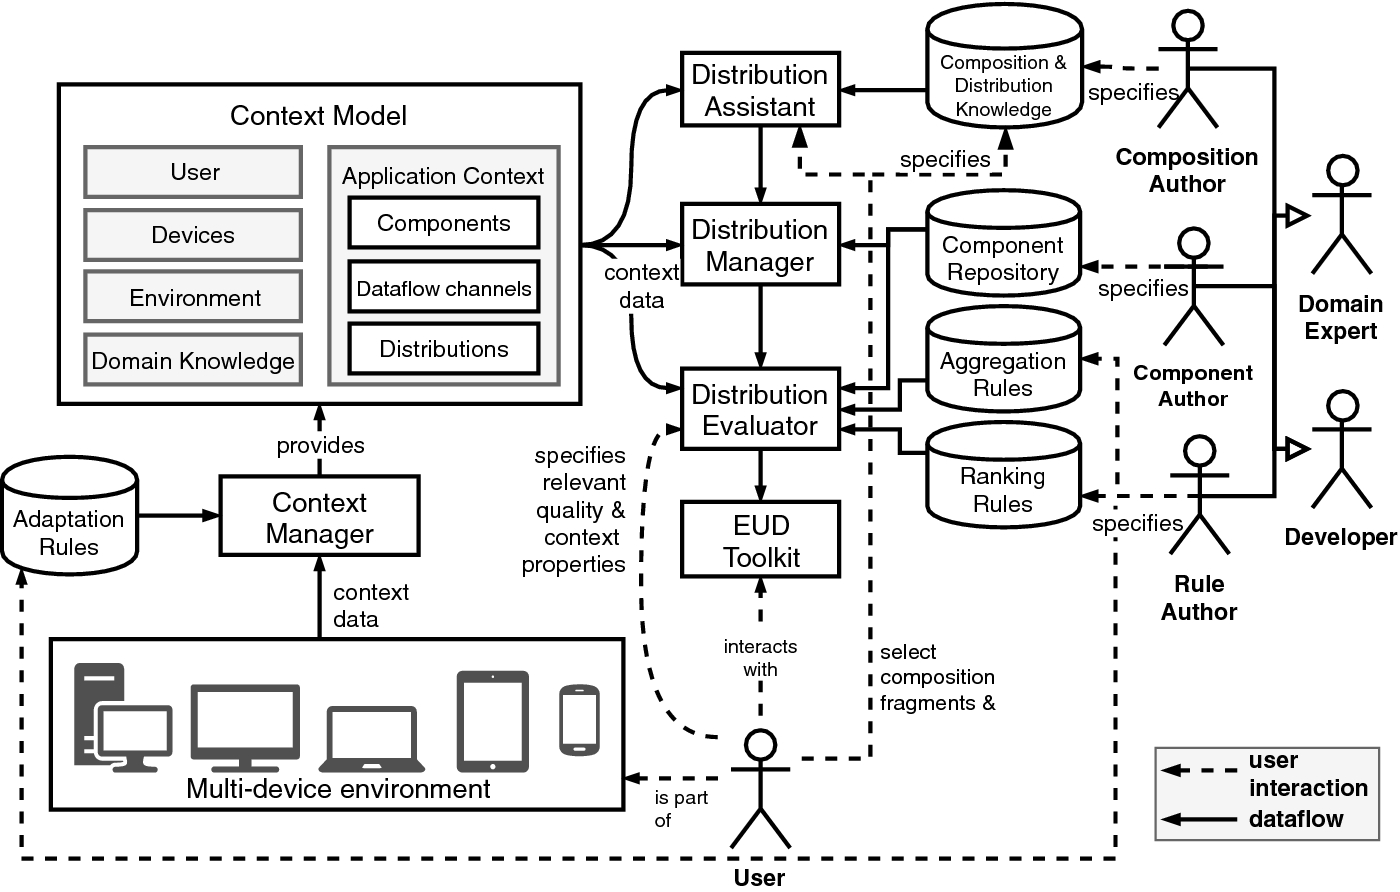 Towards Distribution Options in the End-User Development of Multi